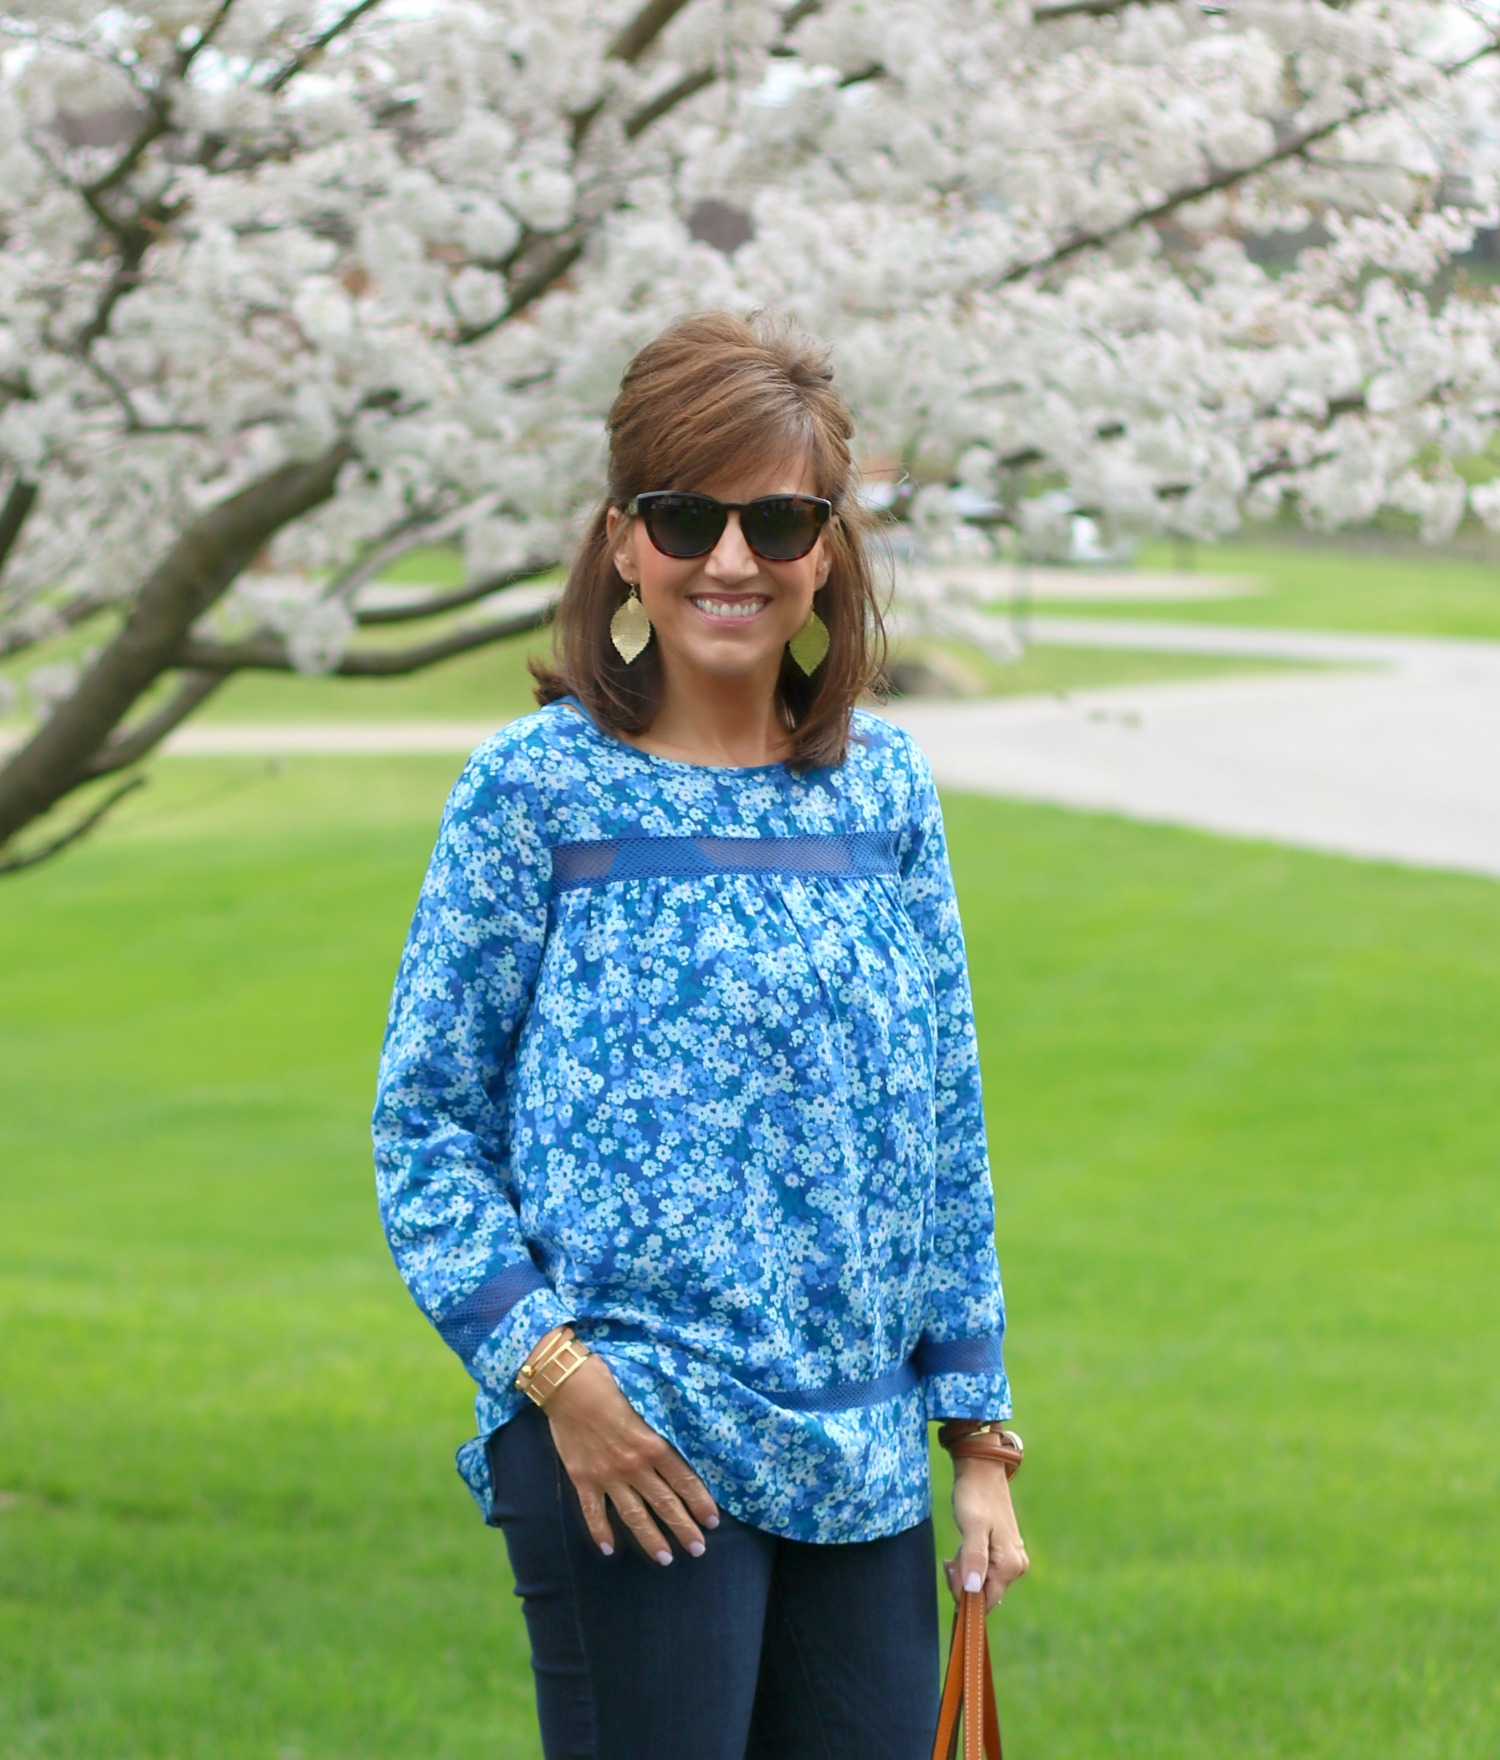 27 Days of Spring Fashion: Gap Top With Denim and Wedge Heels